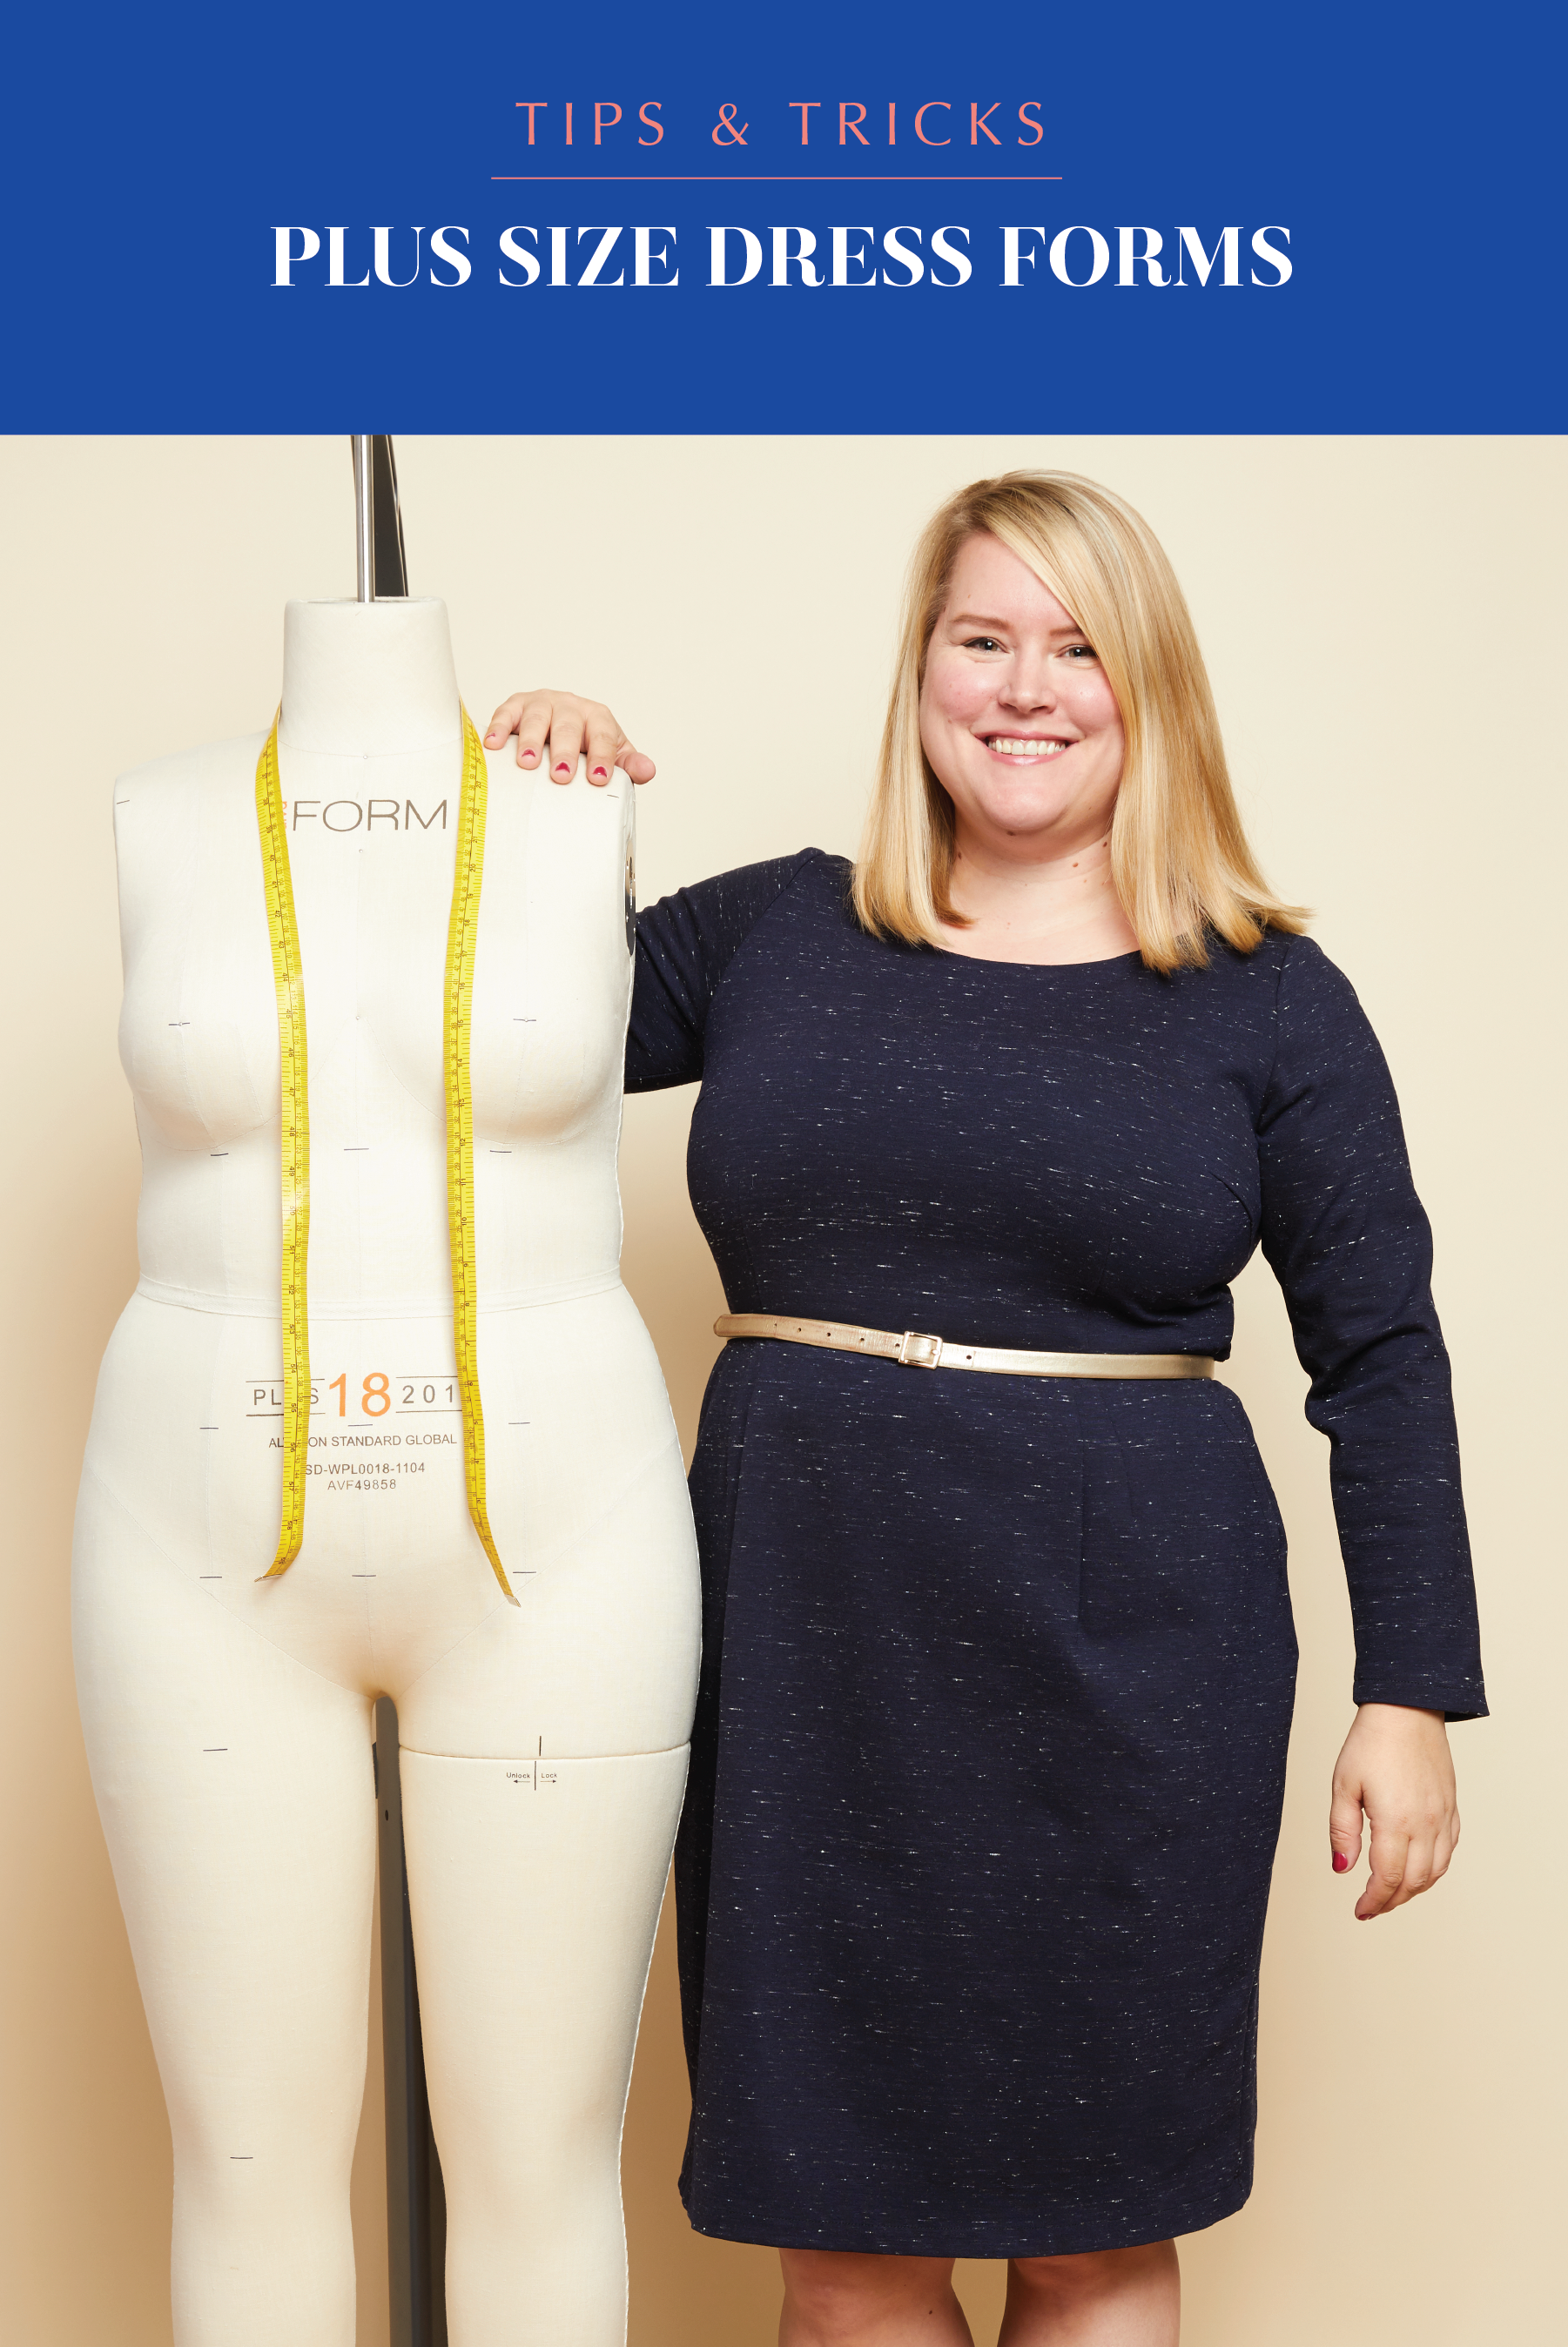 3e96fb7ae1e Plus size sewing dress forms: what you need to know | Cashmerette